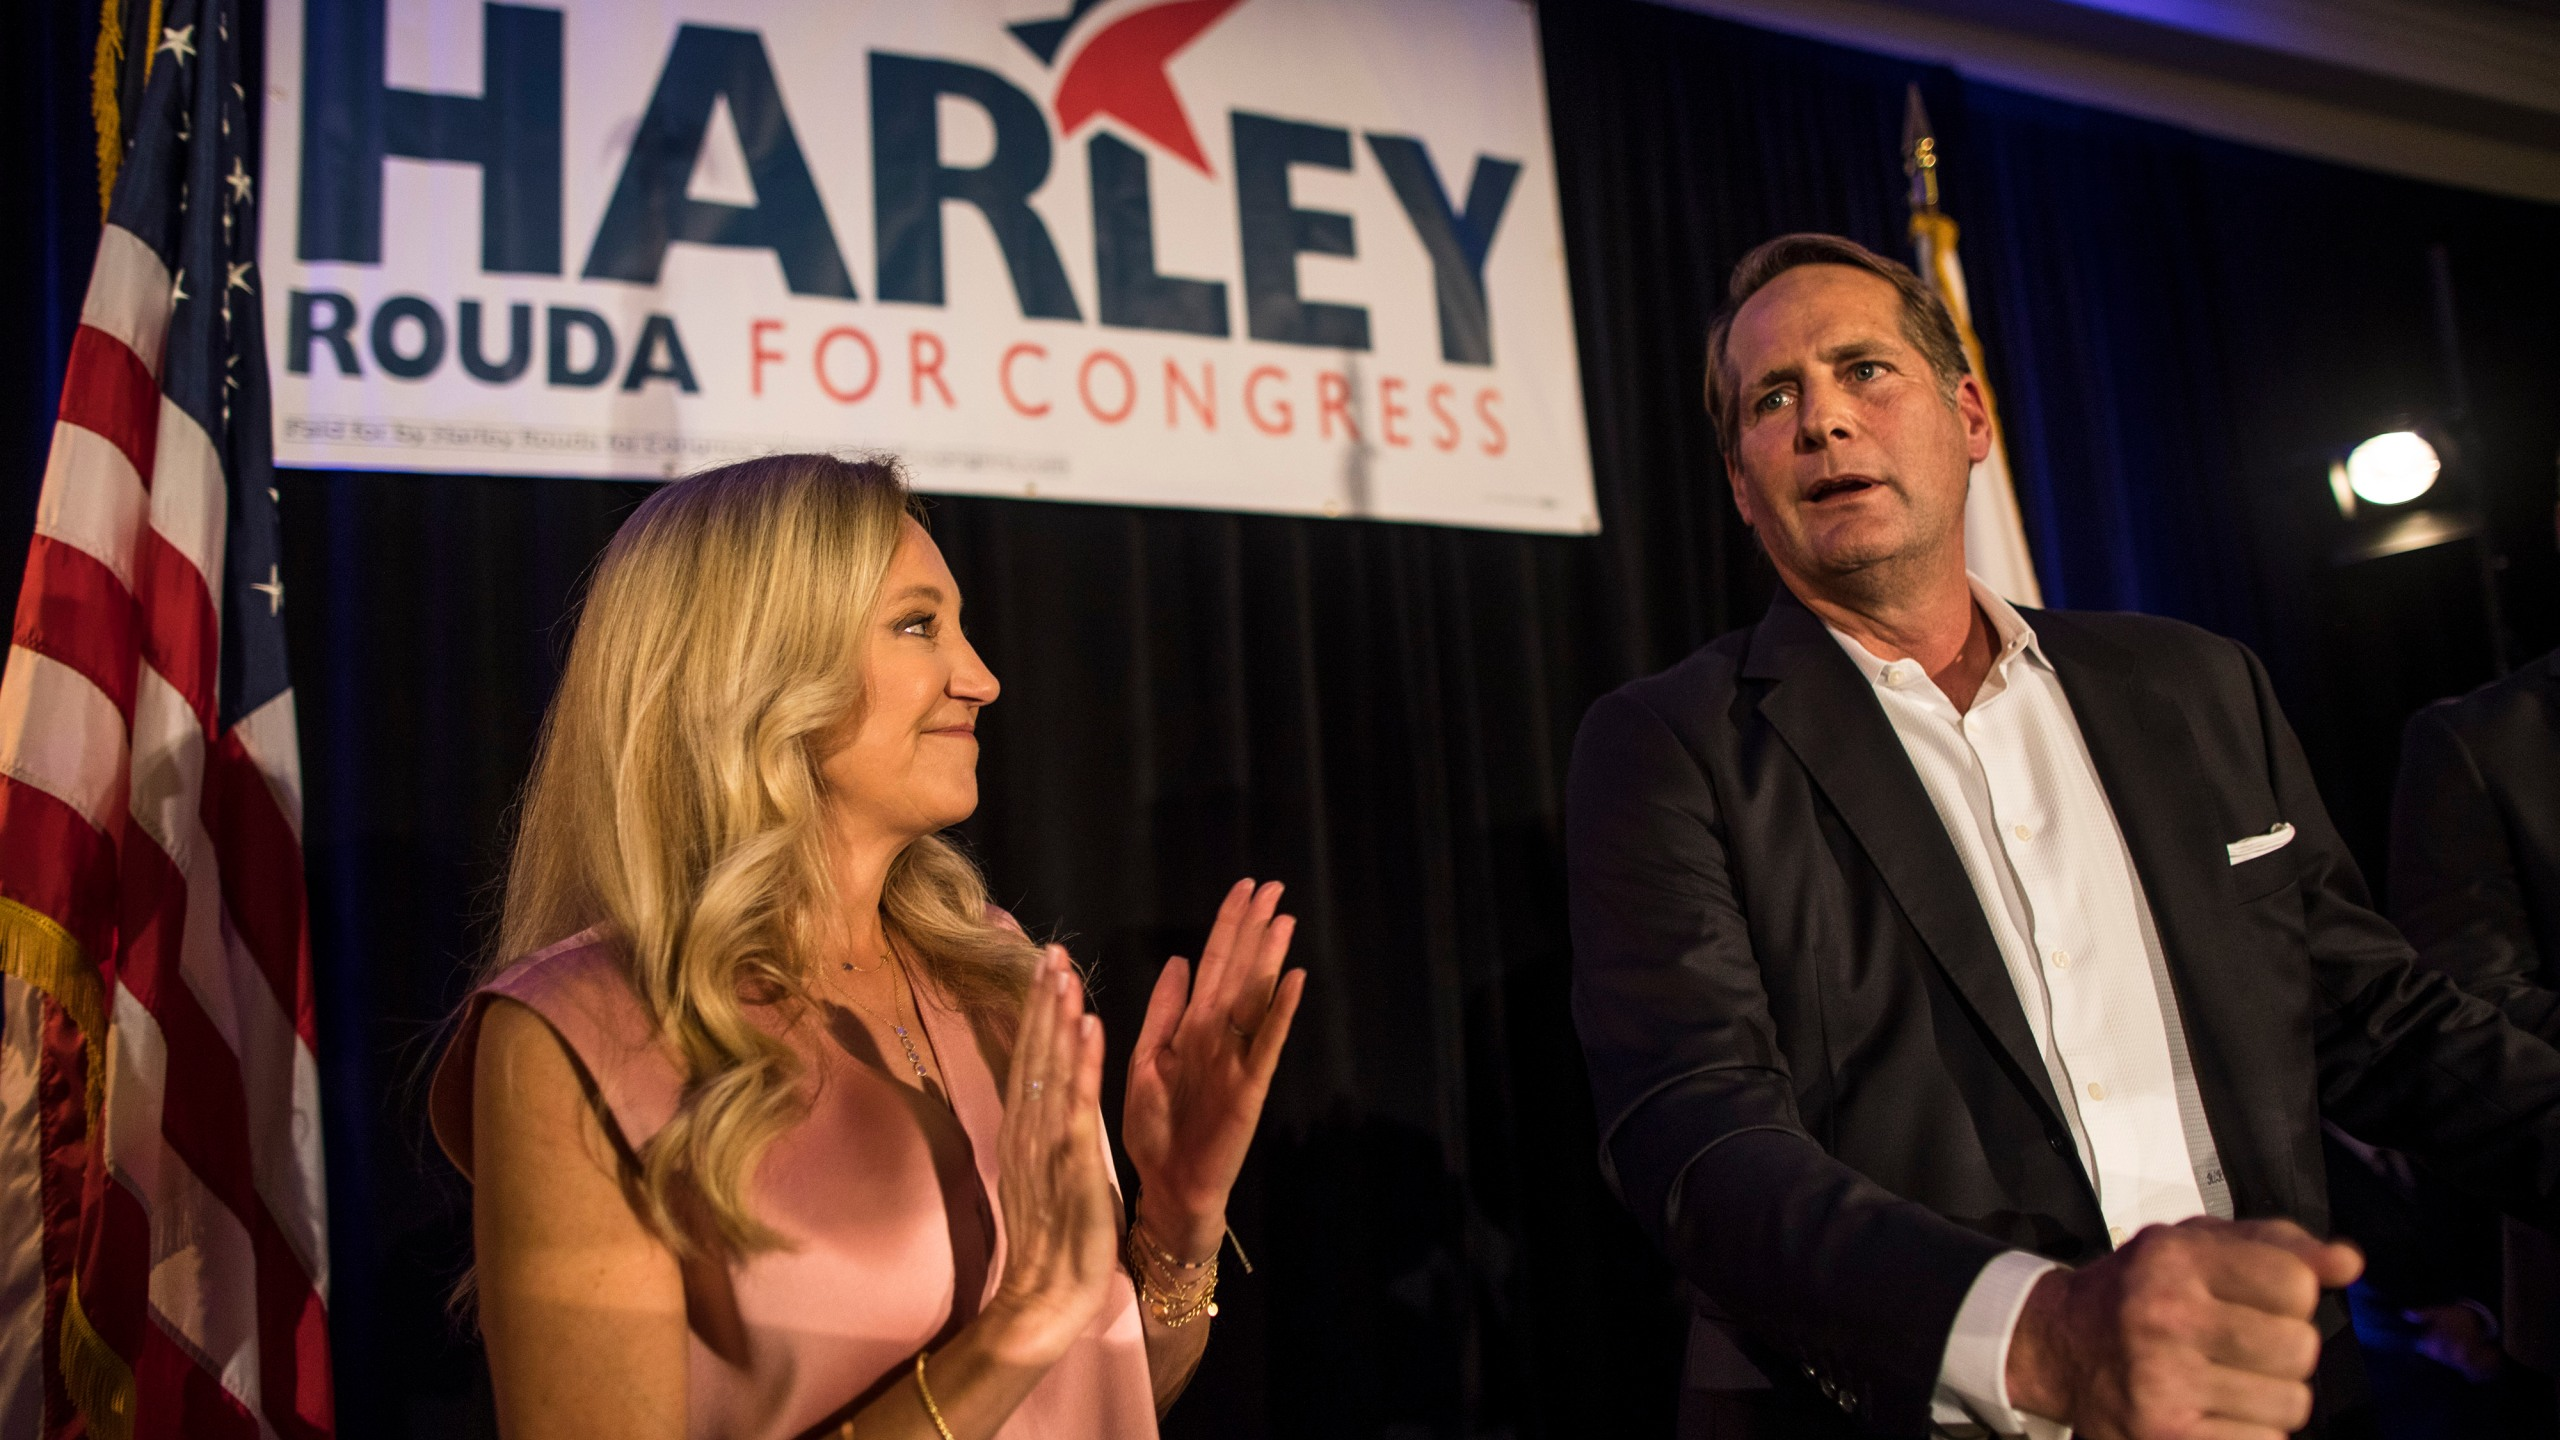 Harley Rouda, right, speaks to supporters with his family during their election day party on Nov. 6, 2018 in Newport Beach. (Credit: Barbara Davidson/Getty Images)